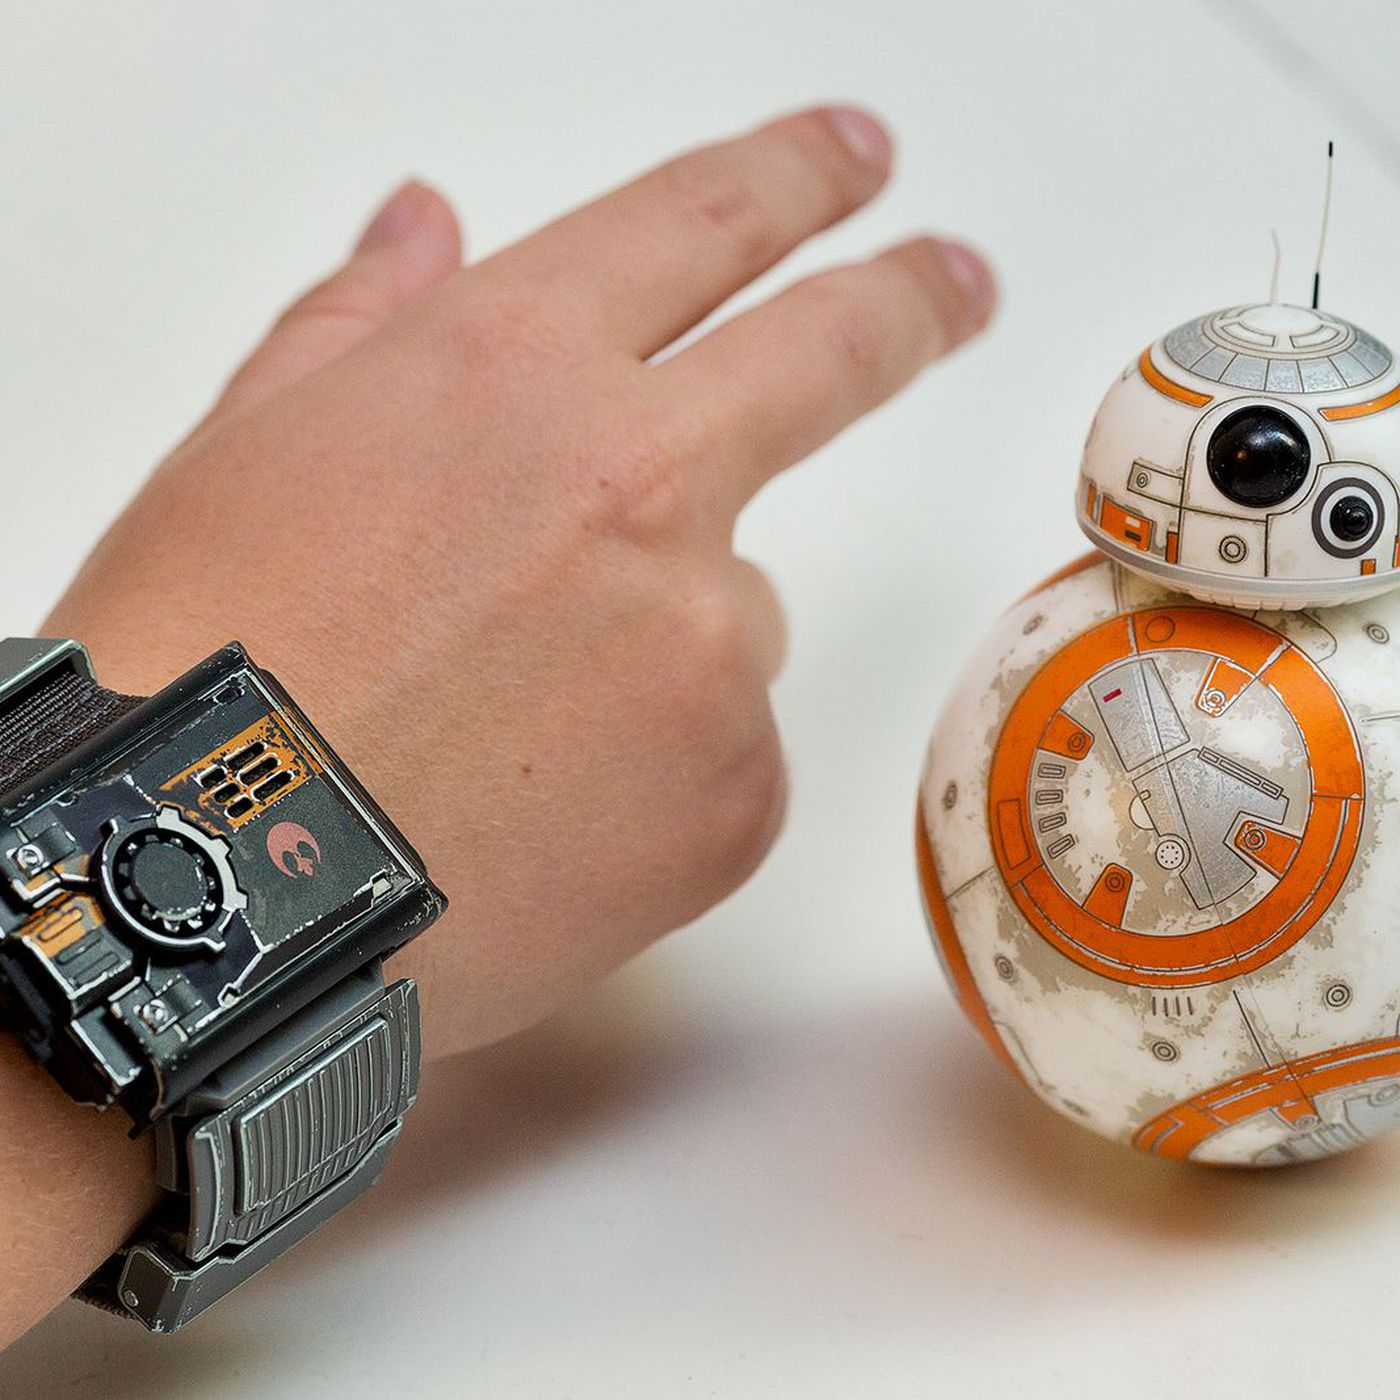 Sphero's Force Band wearable can control nearly anything now thanks